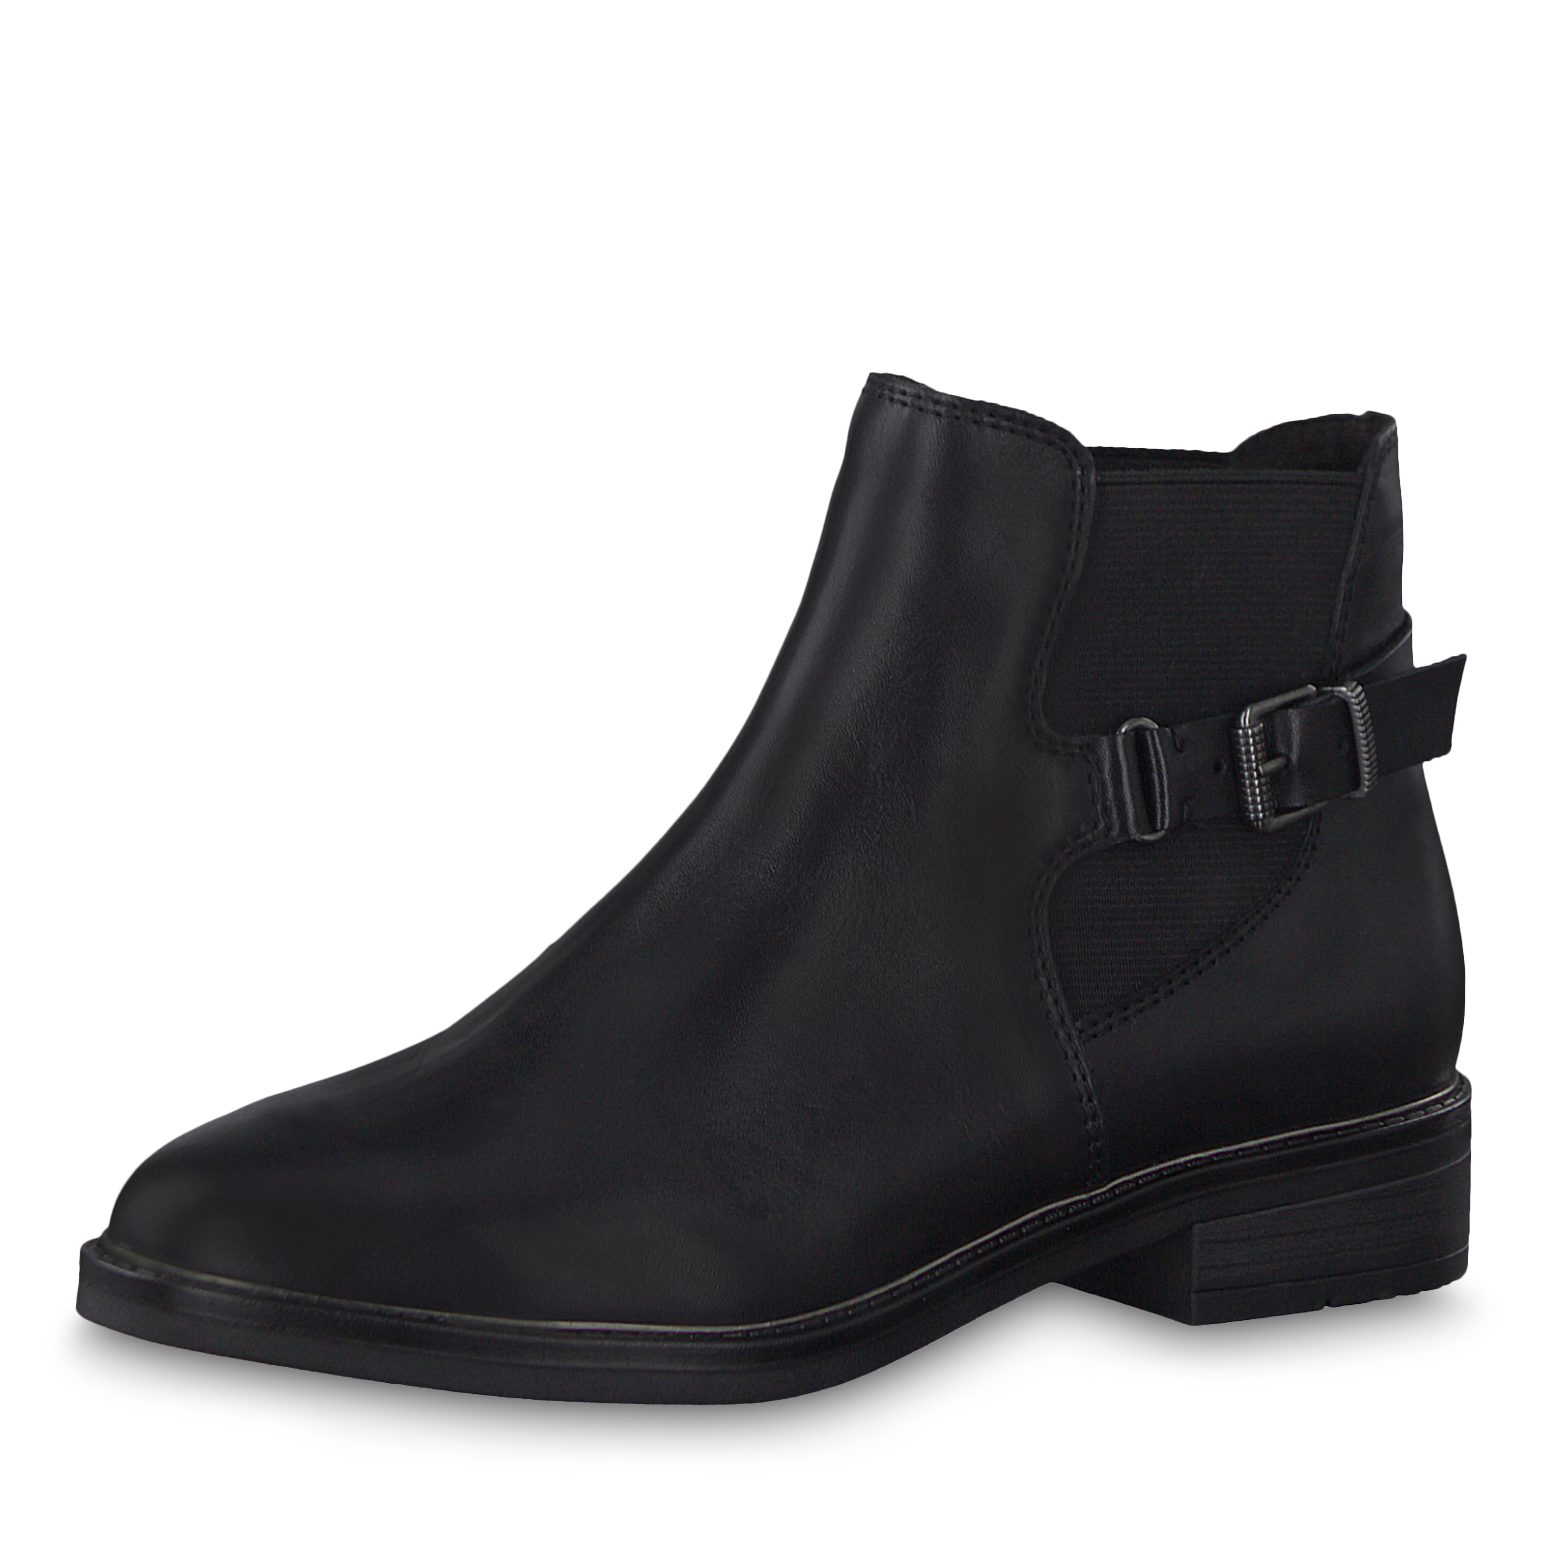 huge discount 2d9be 1e46f Chelsea Boot